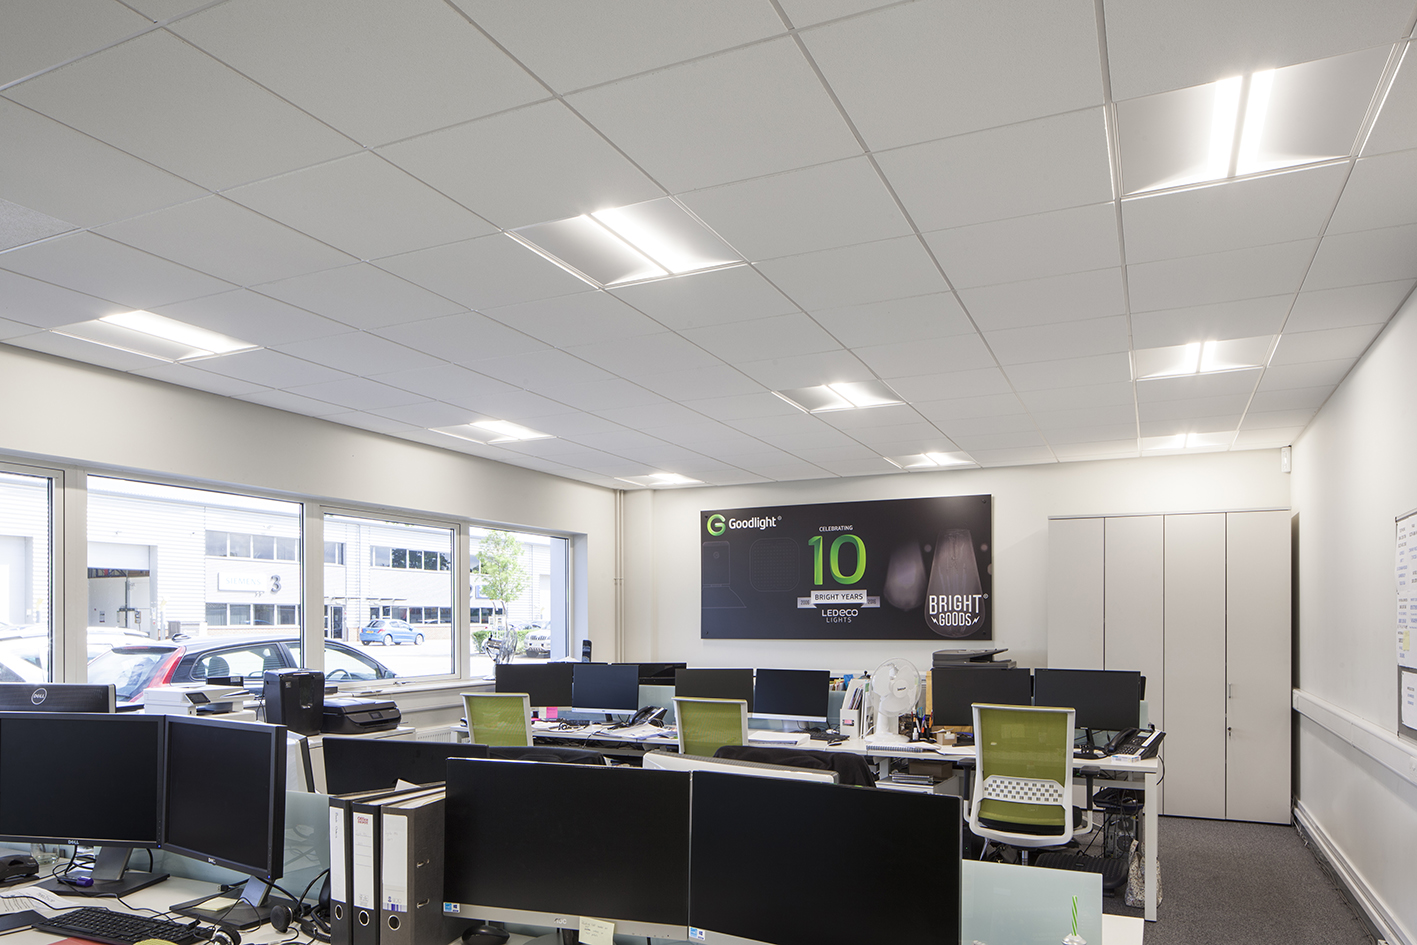 commercial led lighting solutions uk manufacturer 5 year guarantee